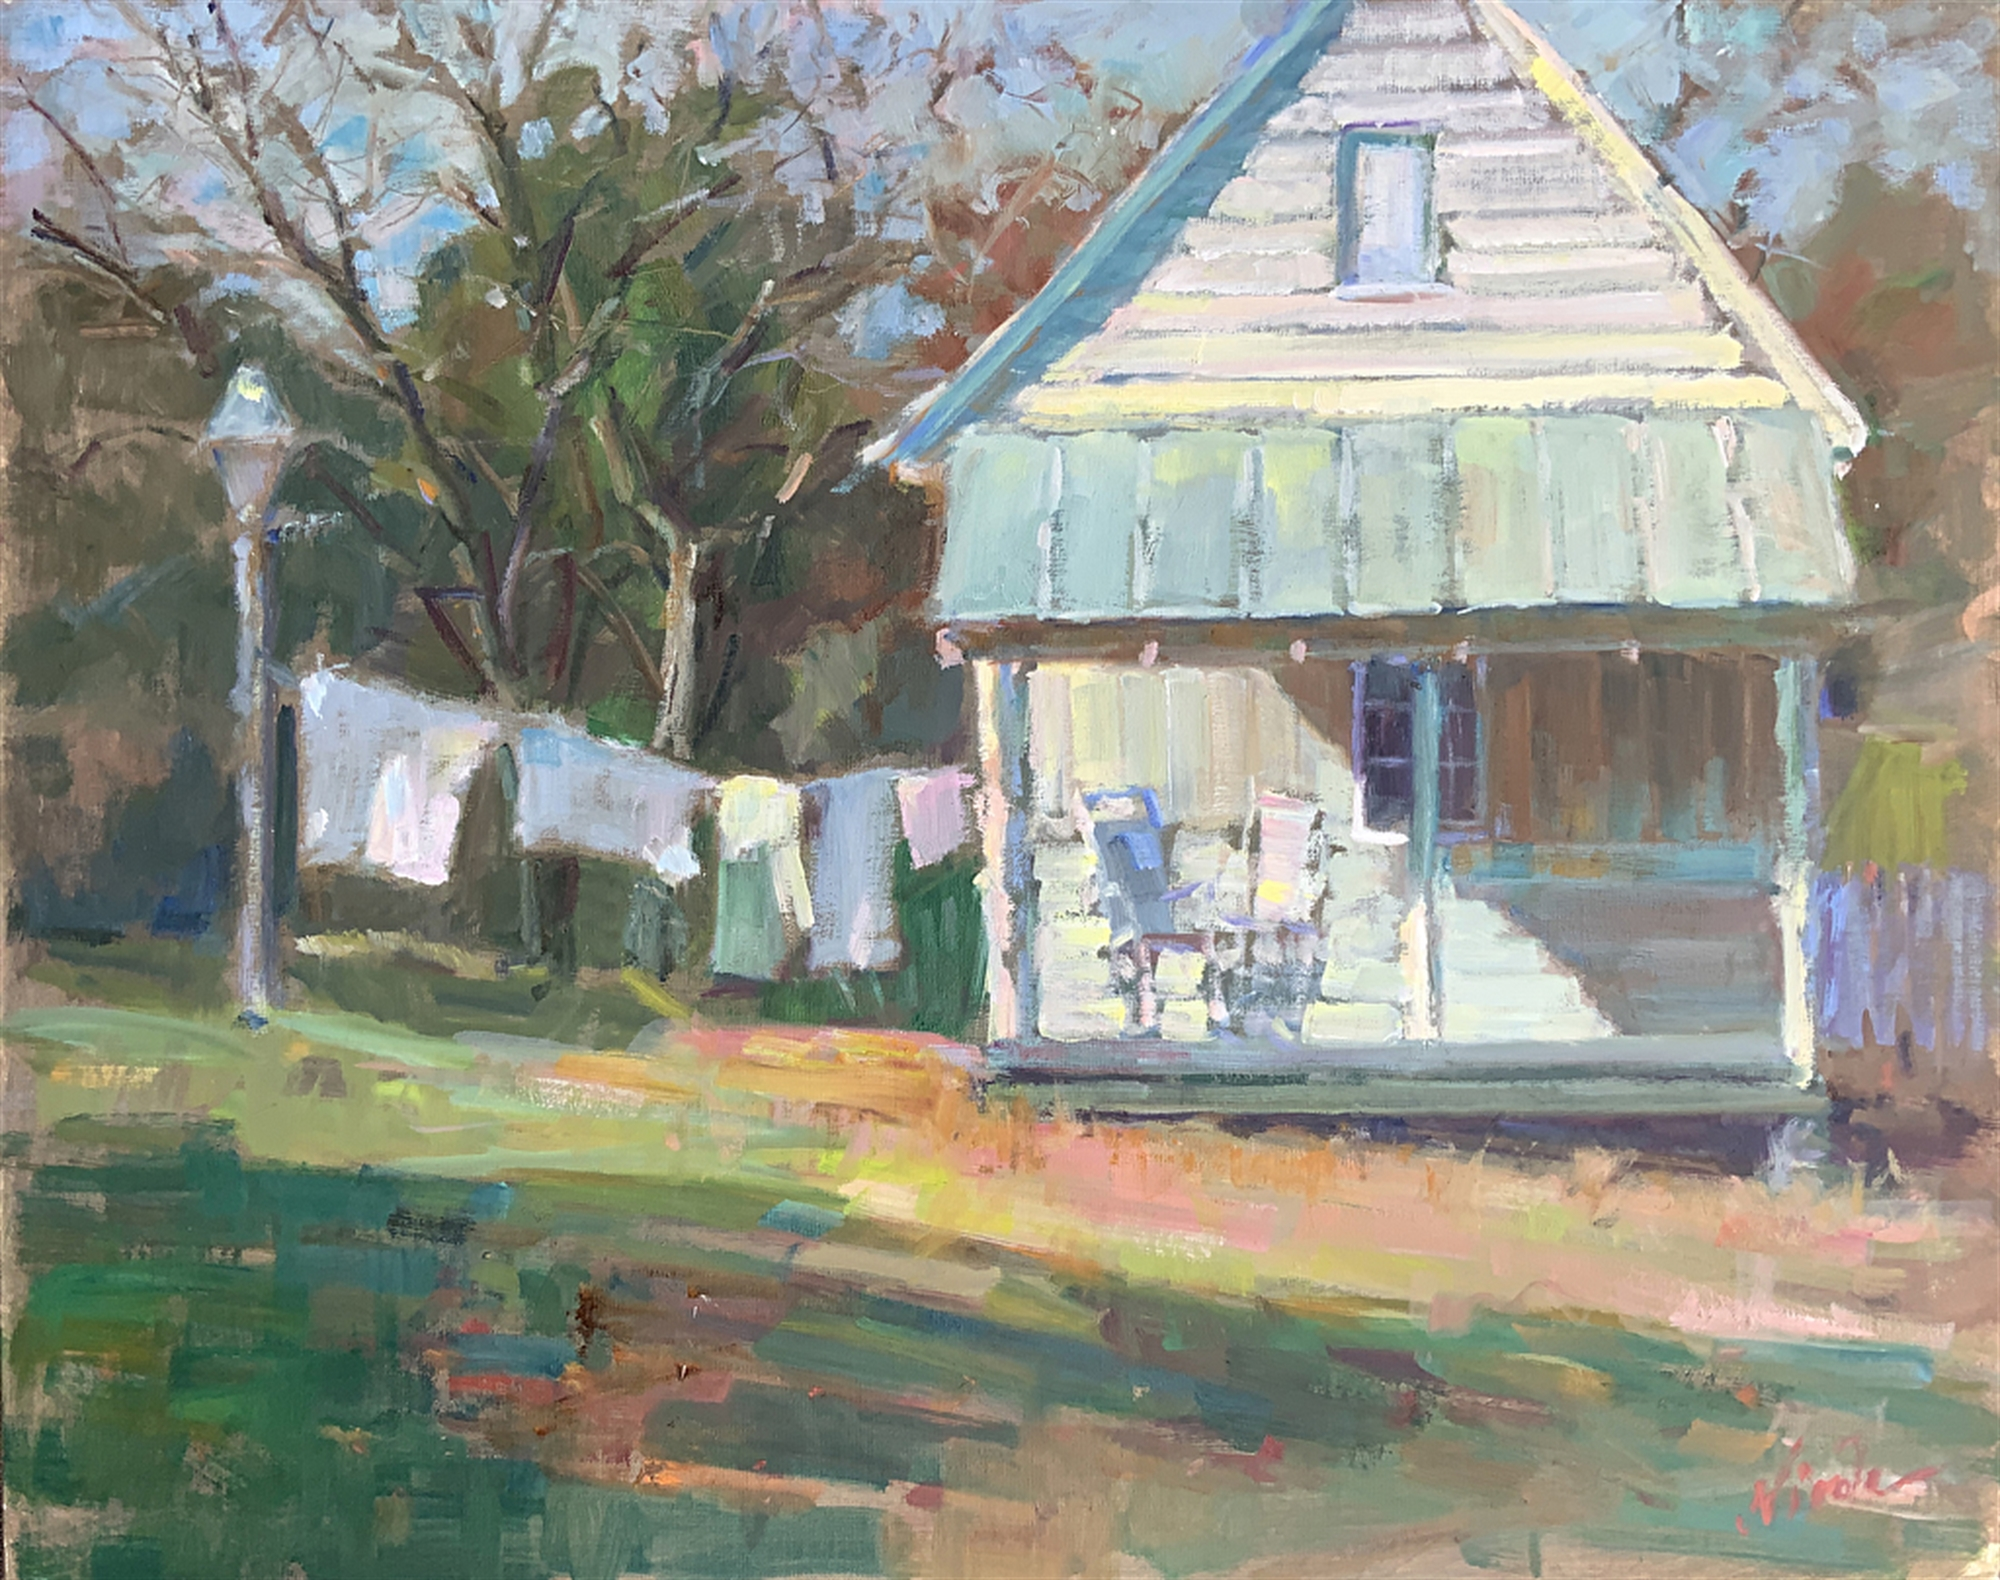 Rural Charm in Shades of White by Nicole White Kennedy